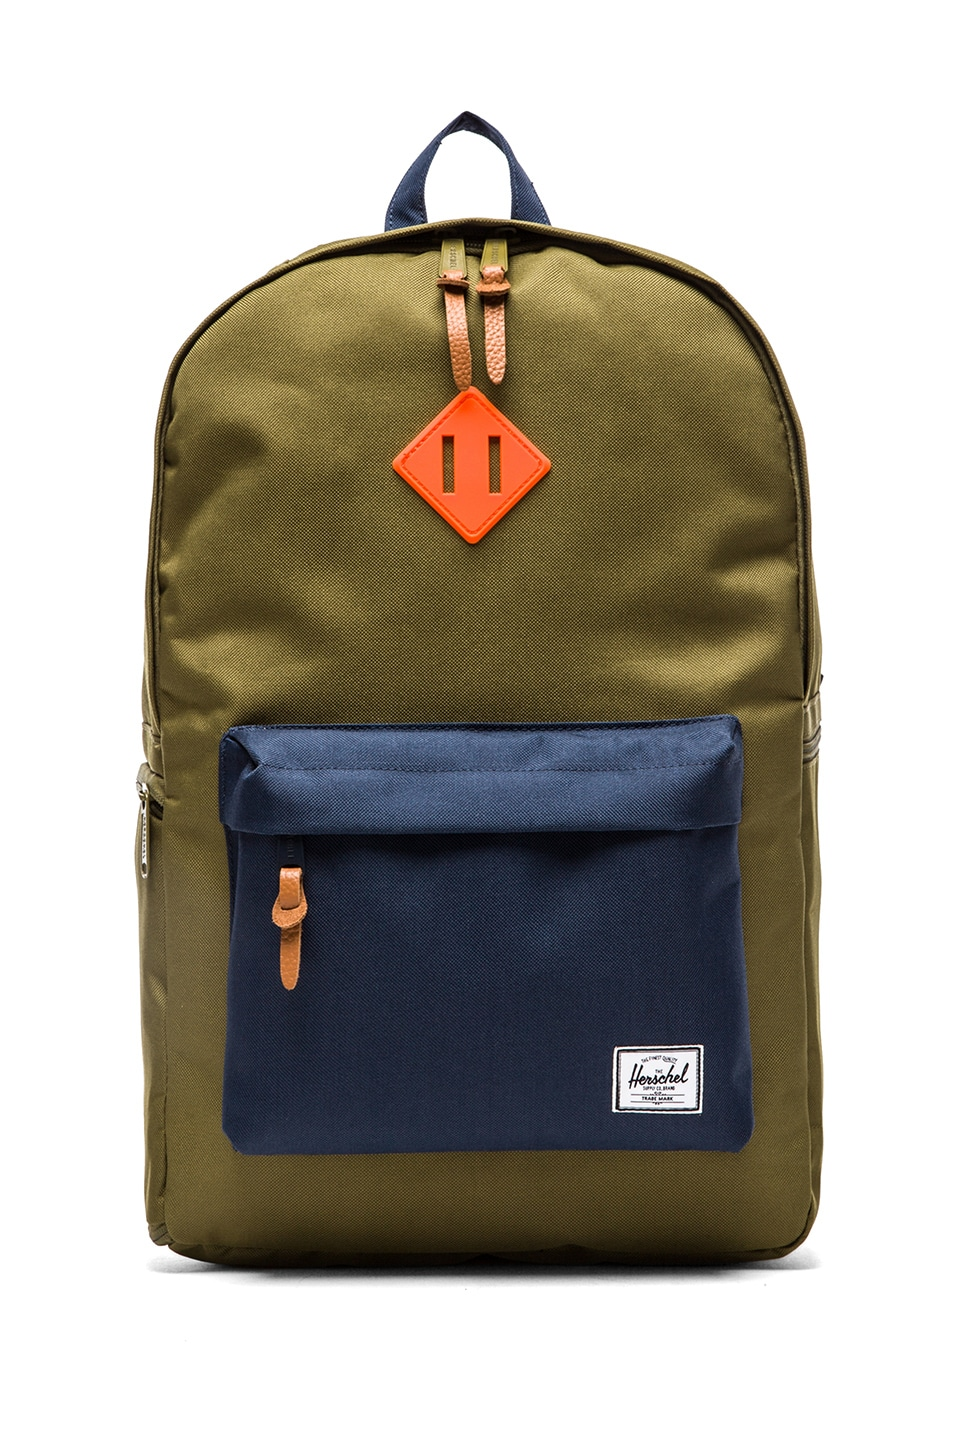 Herschel Supply Co. Heritage Plus in Army & Navy & Neon Orange